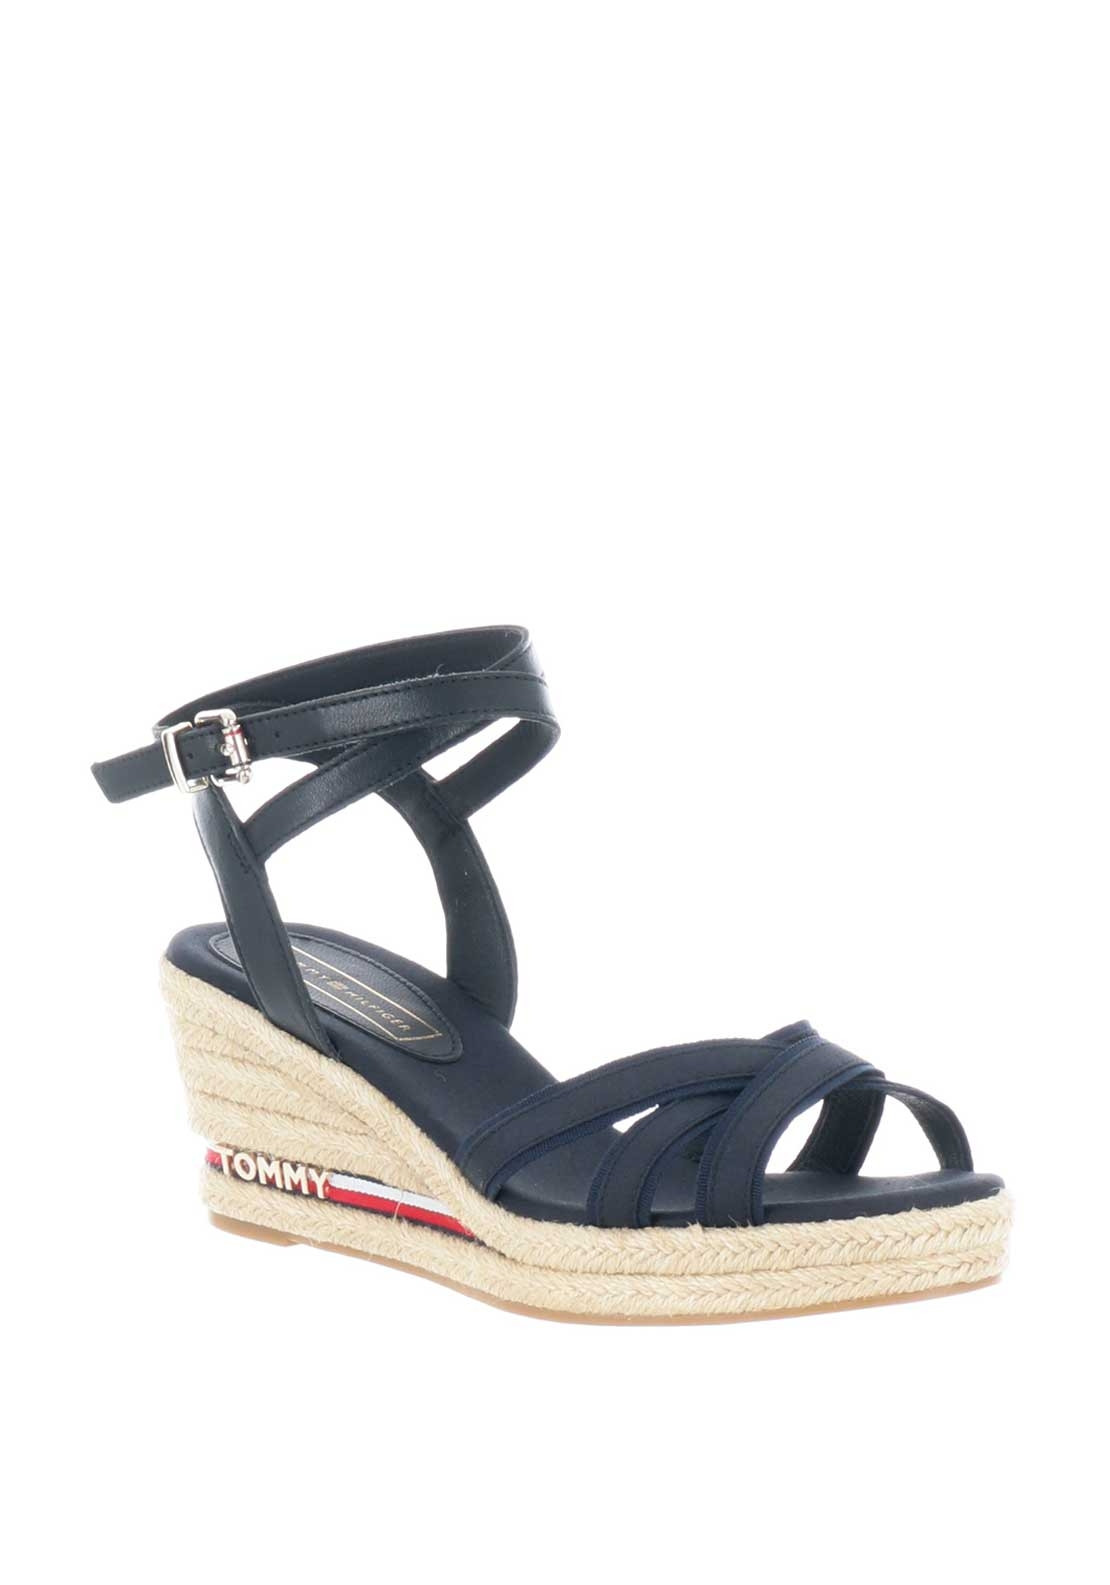 1ccab0a884 Tommy Hilfiger Womens Iconic Elba Wedge Sandals, Navy | McElhinneys